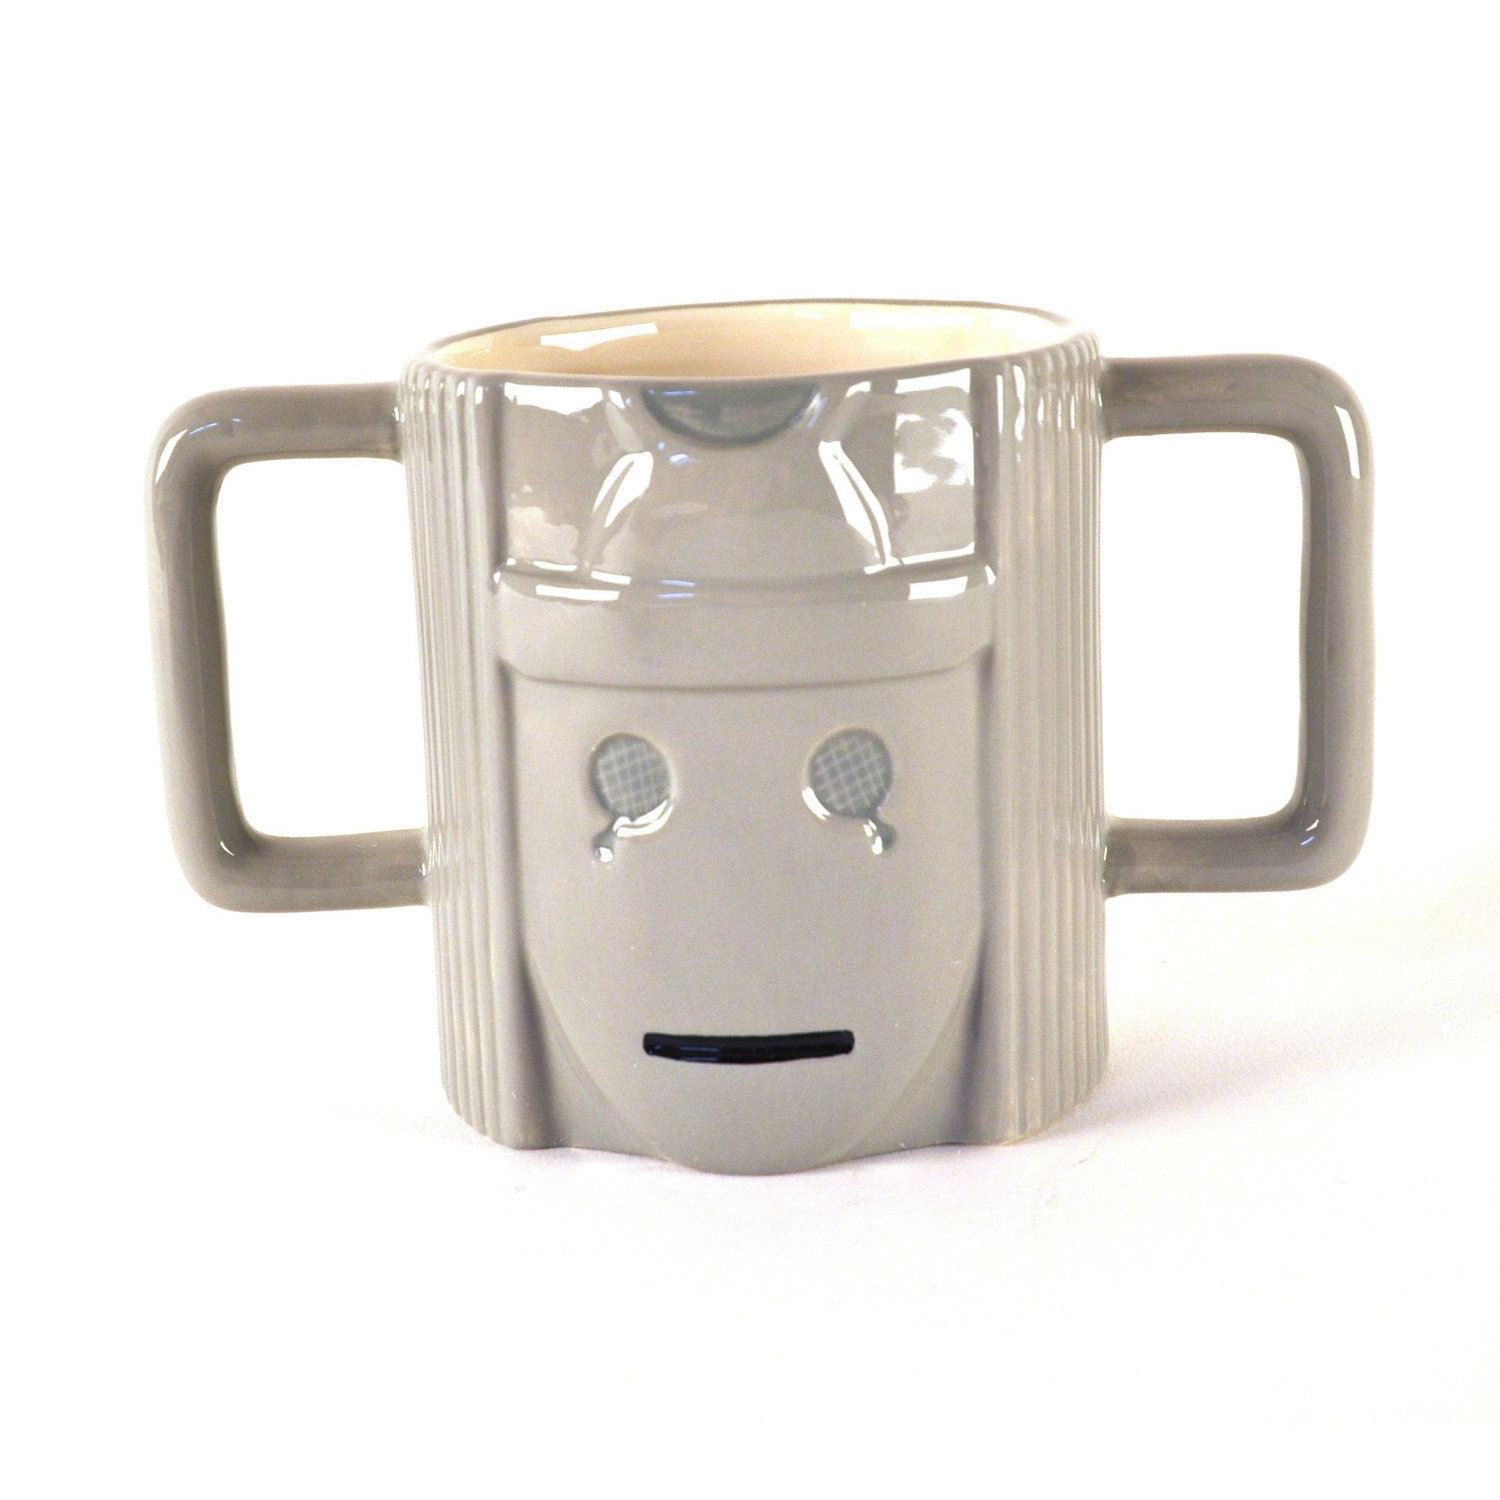 Cyberman's Head 3D Shaped Mug